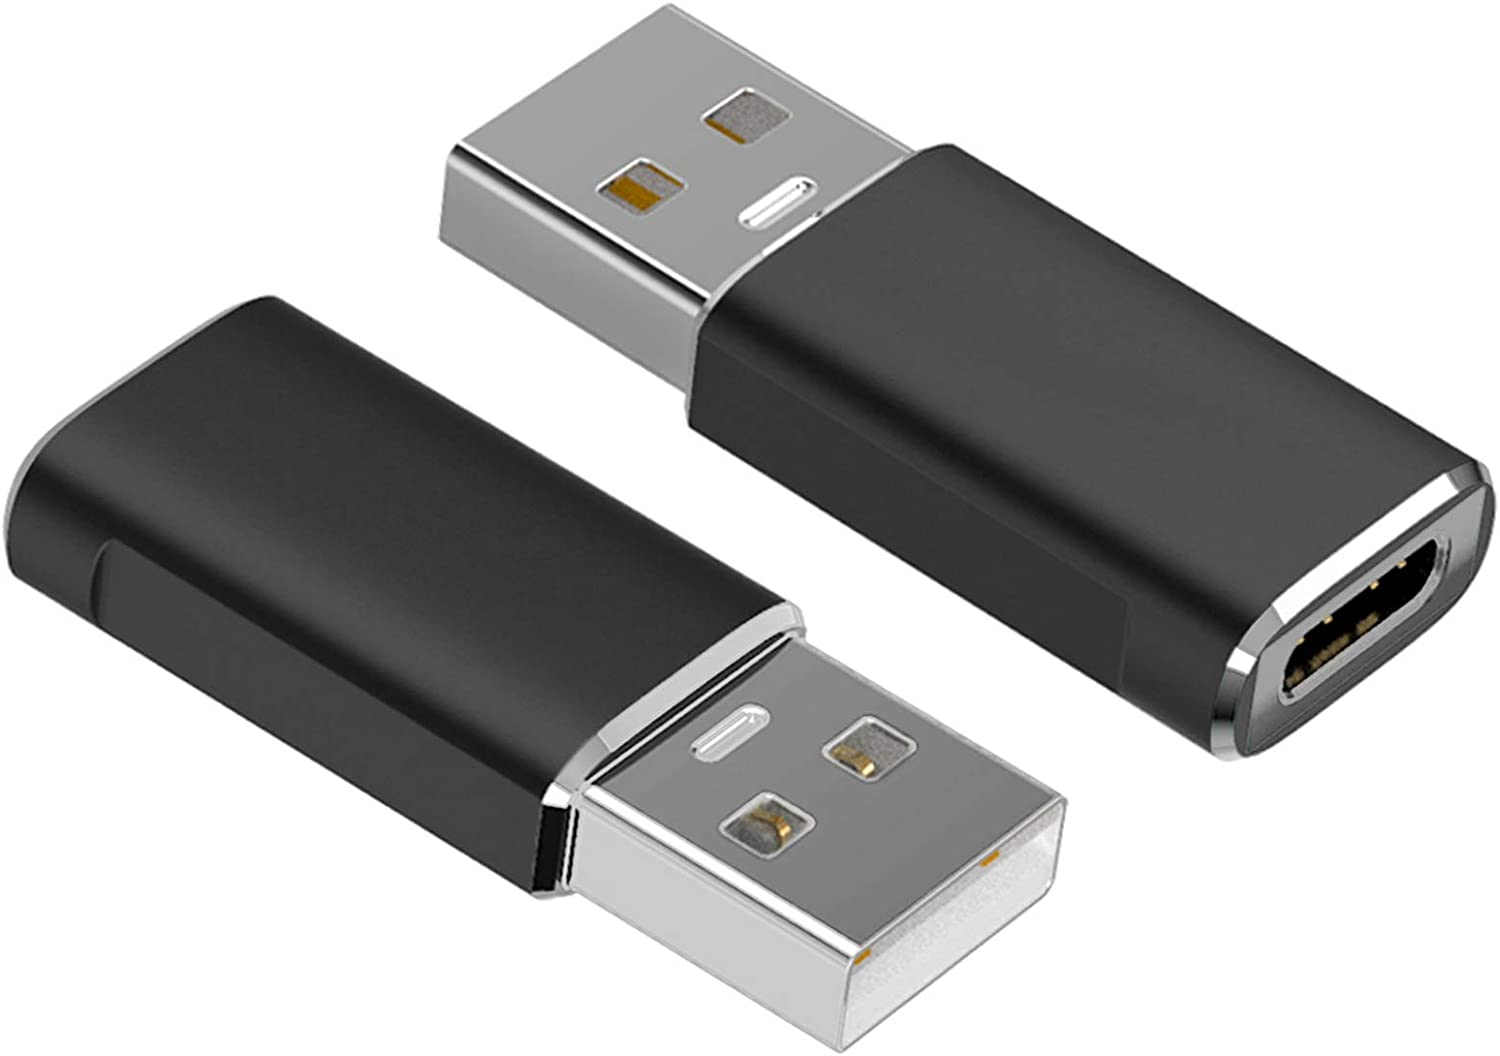 USB C Female to USB 3.0 Male Adapter(2-Pack), BrexLink Type C to USB A Adapter, Compatible with Laptops, Power Banks, Chargers, and More Devices with Standard USB A Ports (Black)